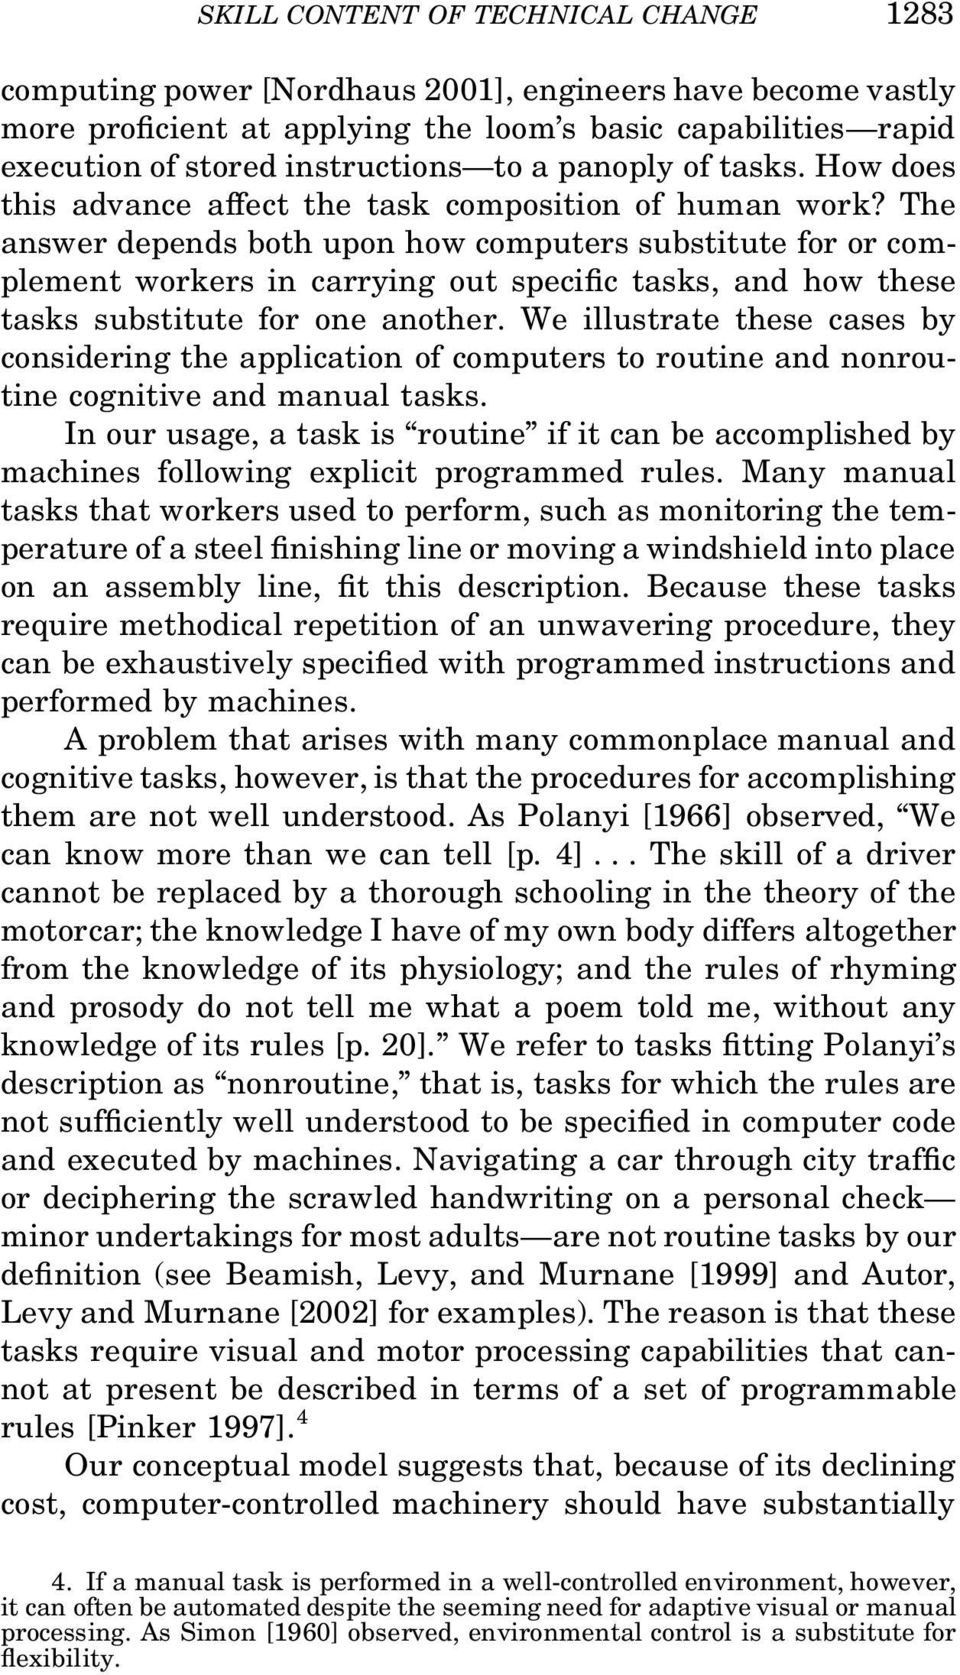 The answer depends both upon how computers substitute for or complement workers in carrying out speci c tasks, and how these tasks substitute for one another.